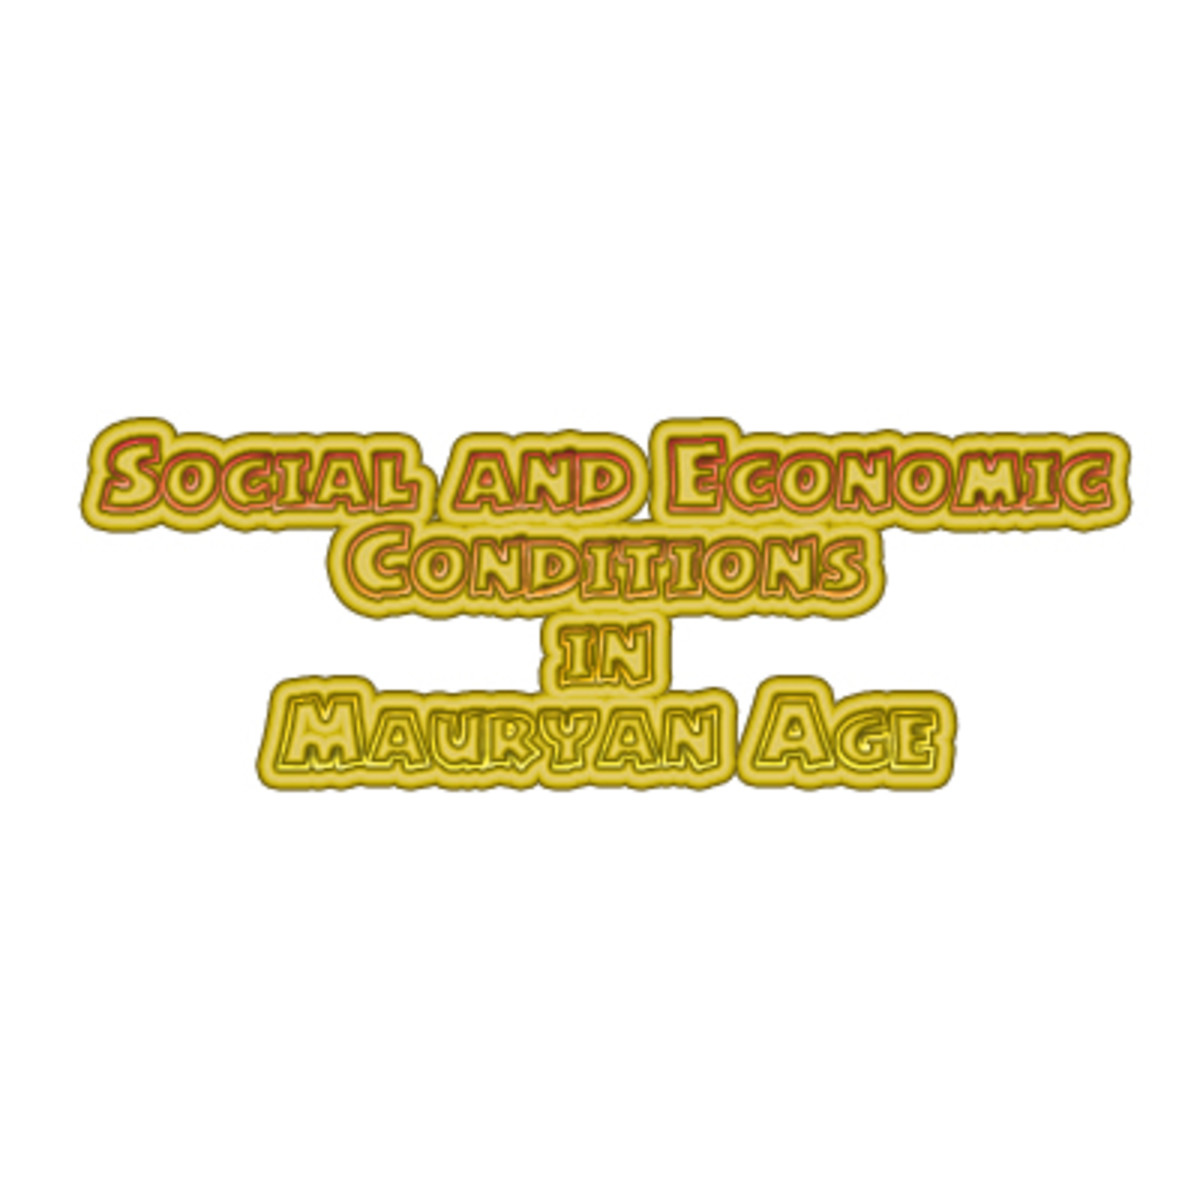 Social and Economic Conditions in Mauryan Age